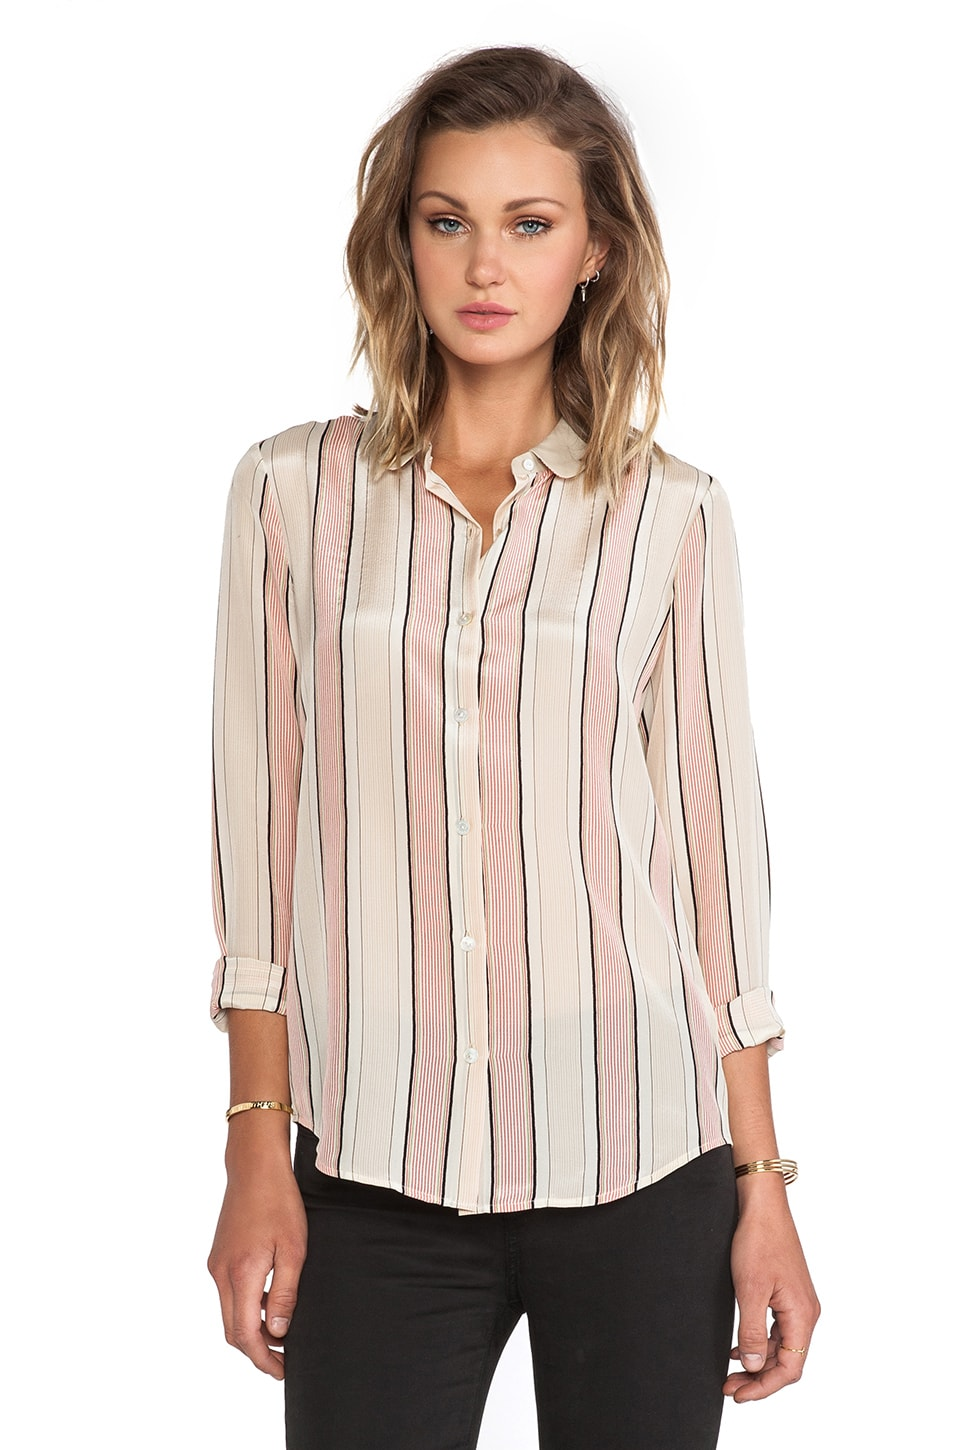 Maison Scotch Stripe Button Up Silk Top in Ivory